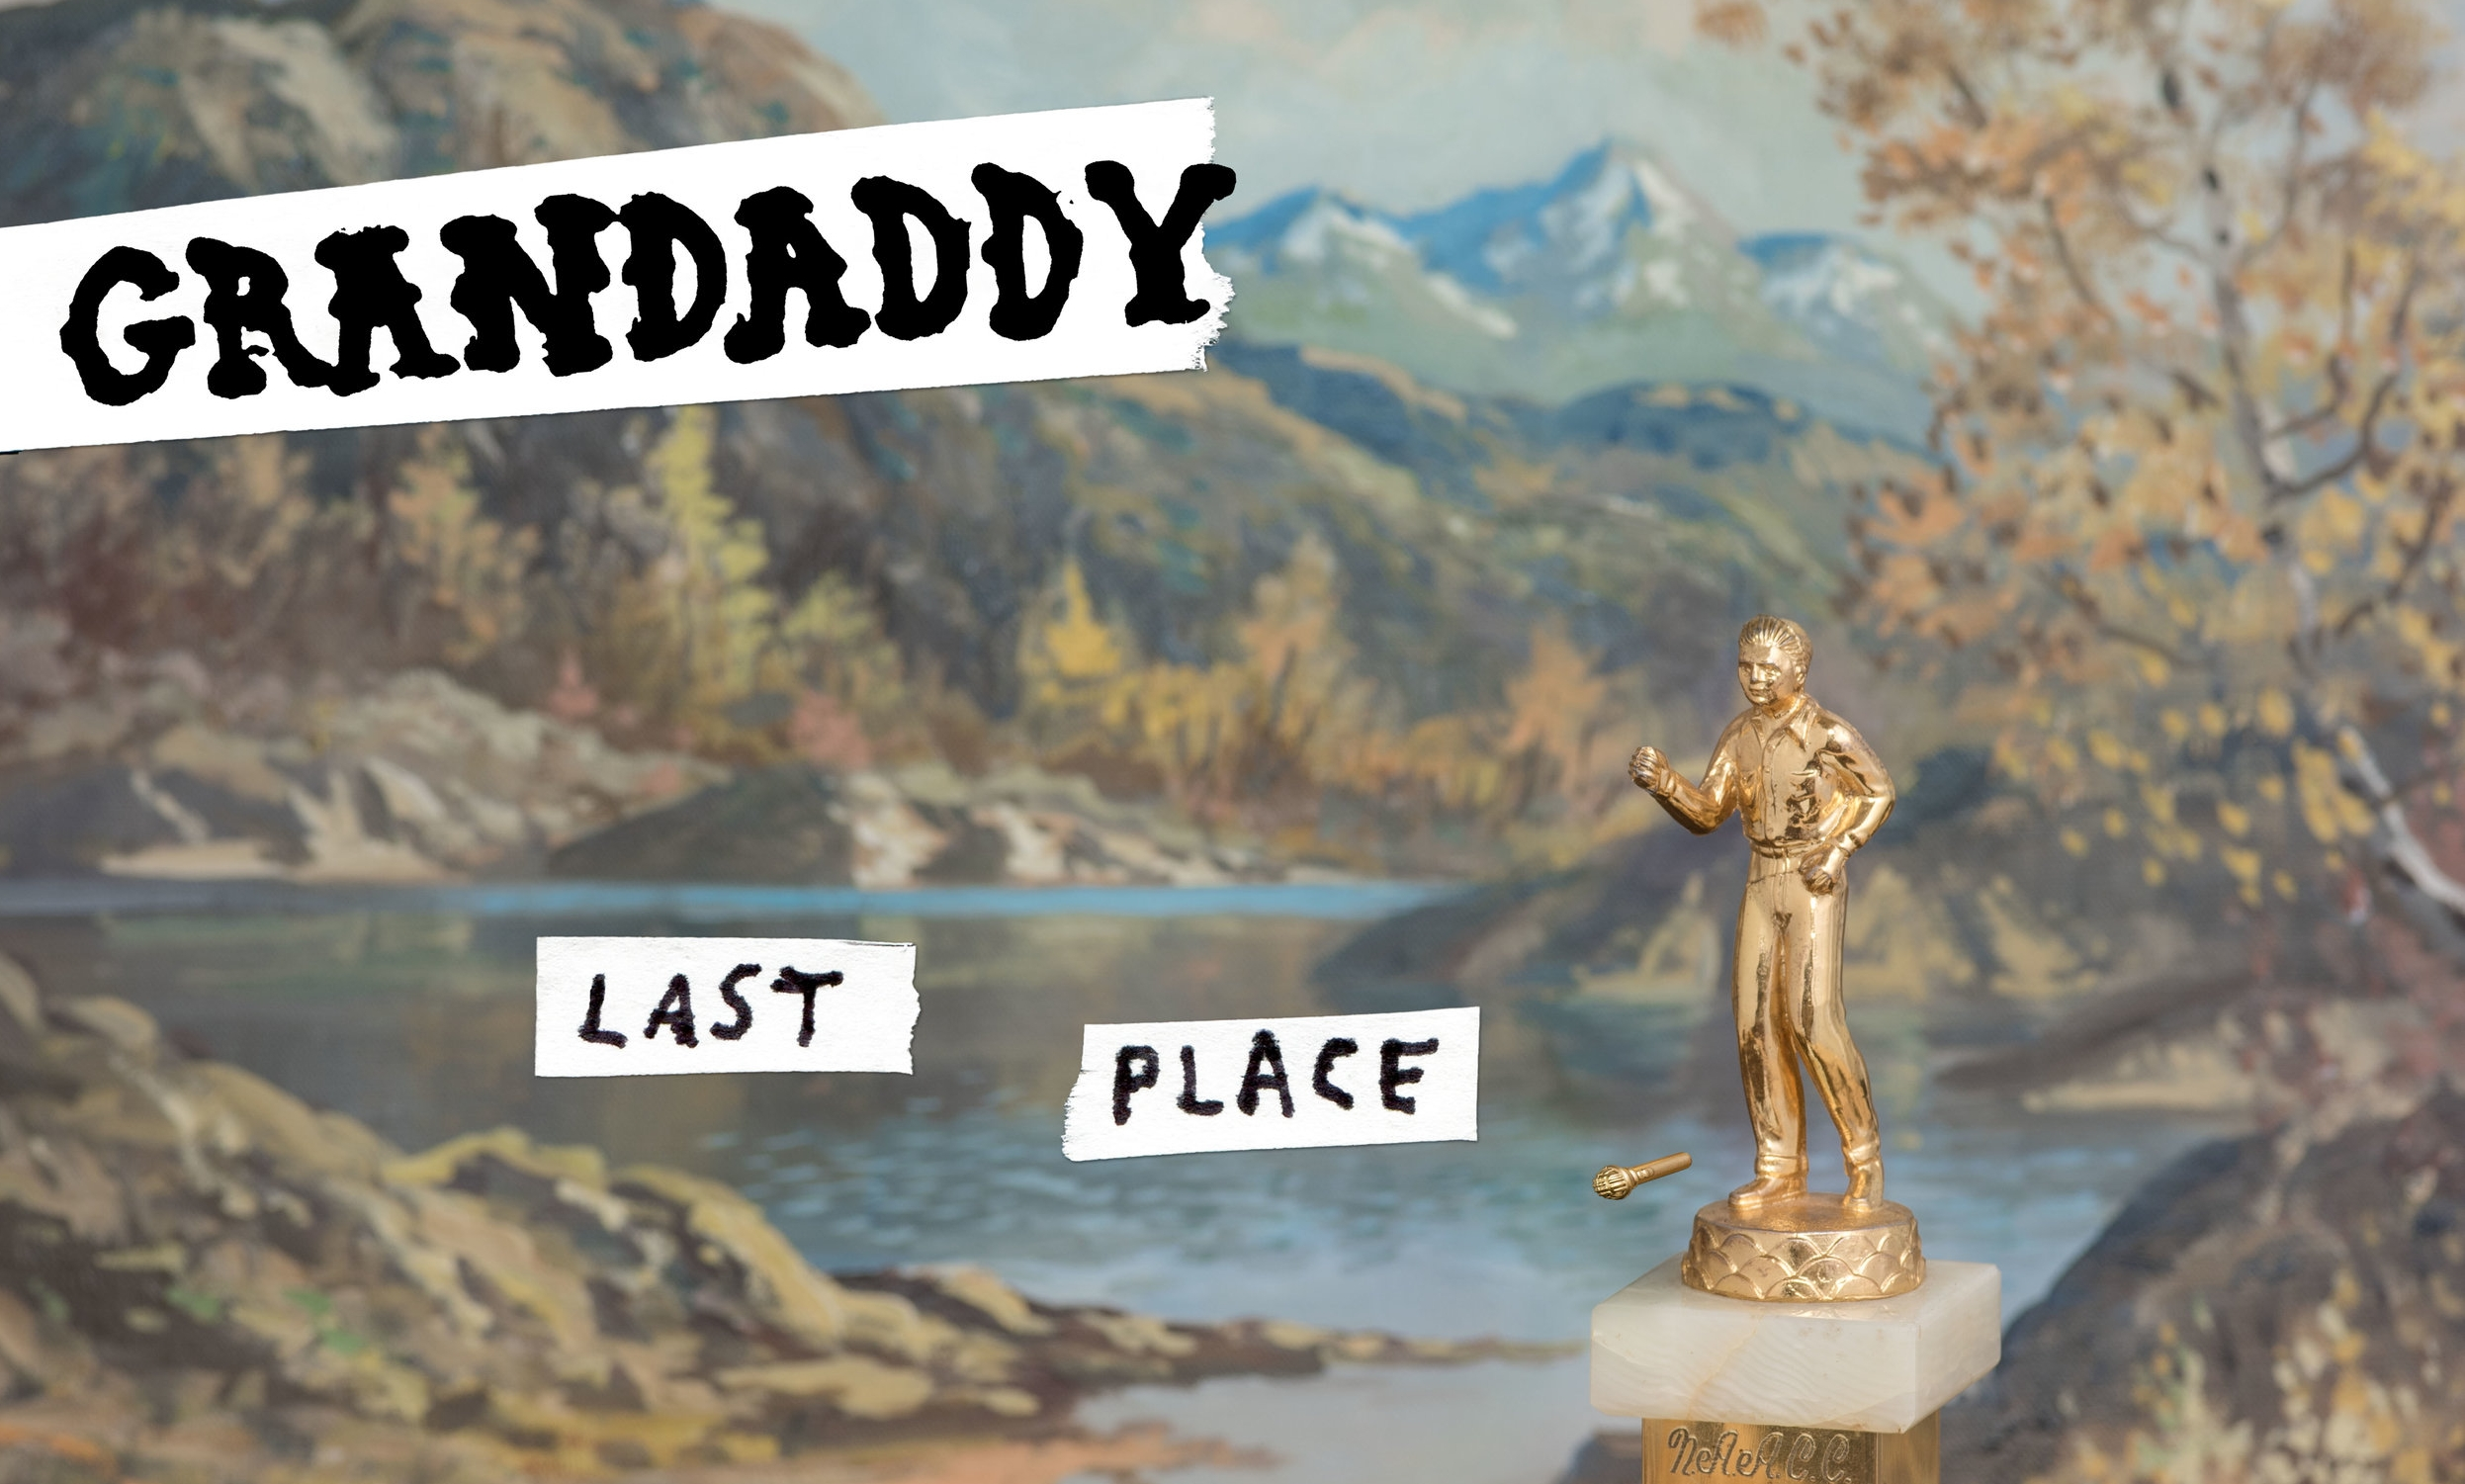 Grandaddy_LastPlace_Art.jpg